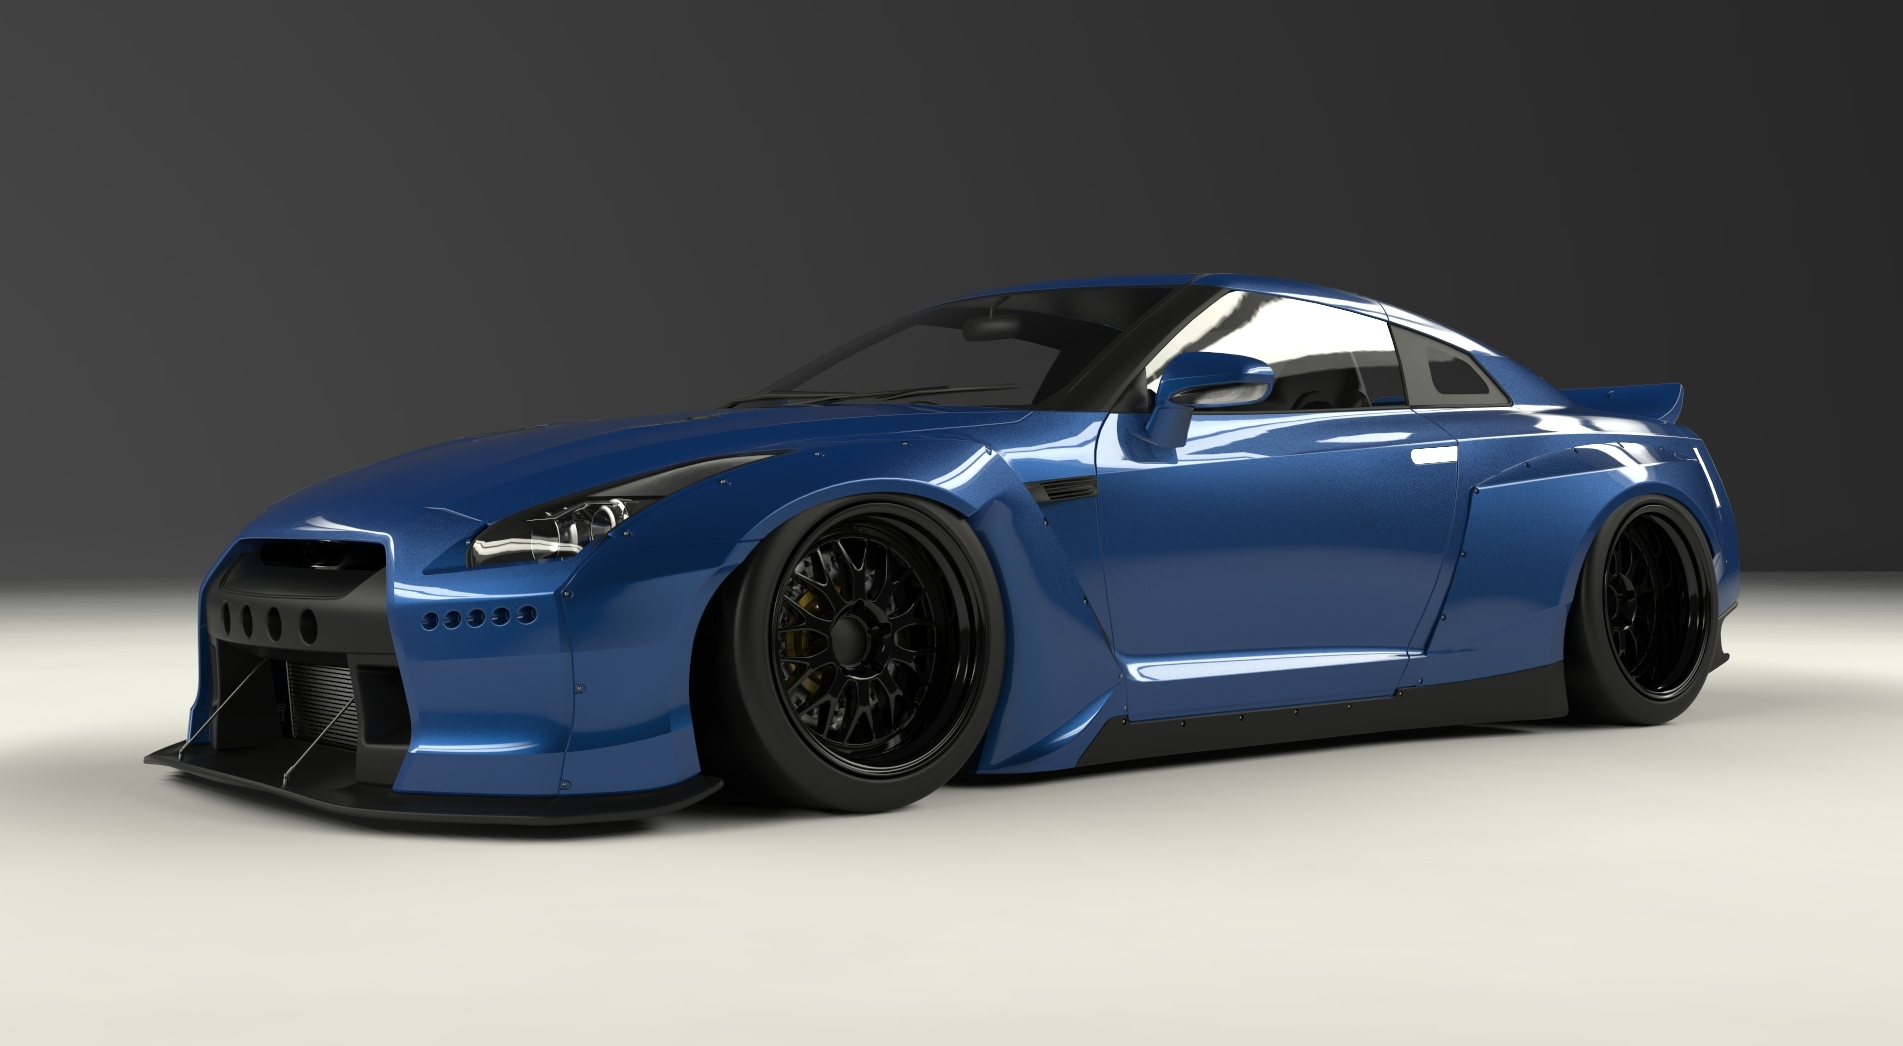 Greddy Pandem By Tra Kyoto Complete Body Kit Nissan Gt R